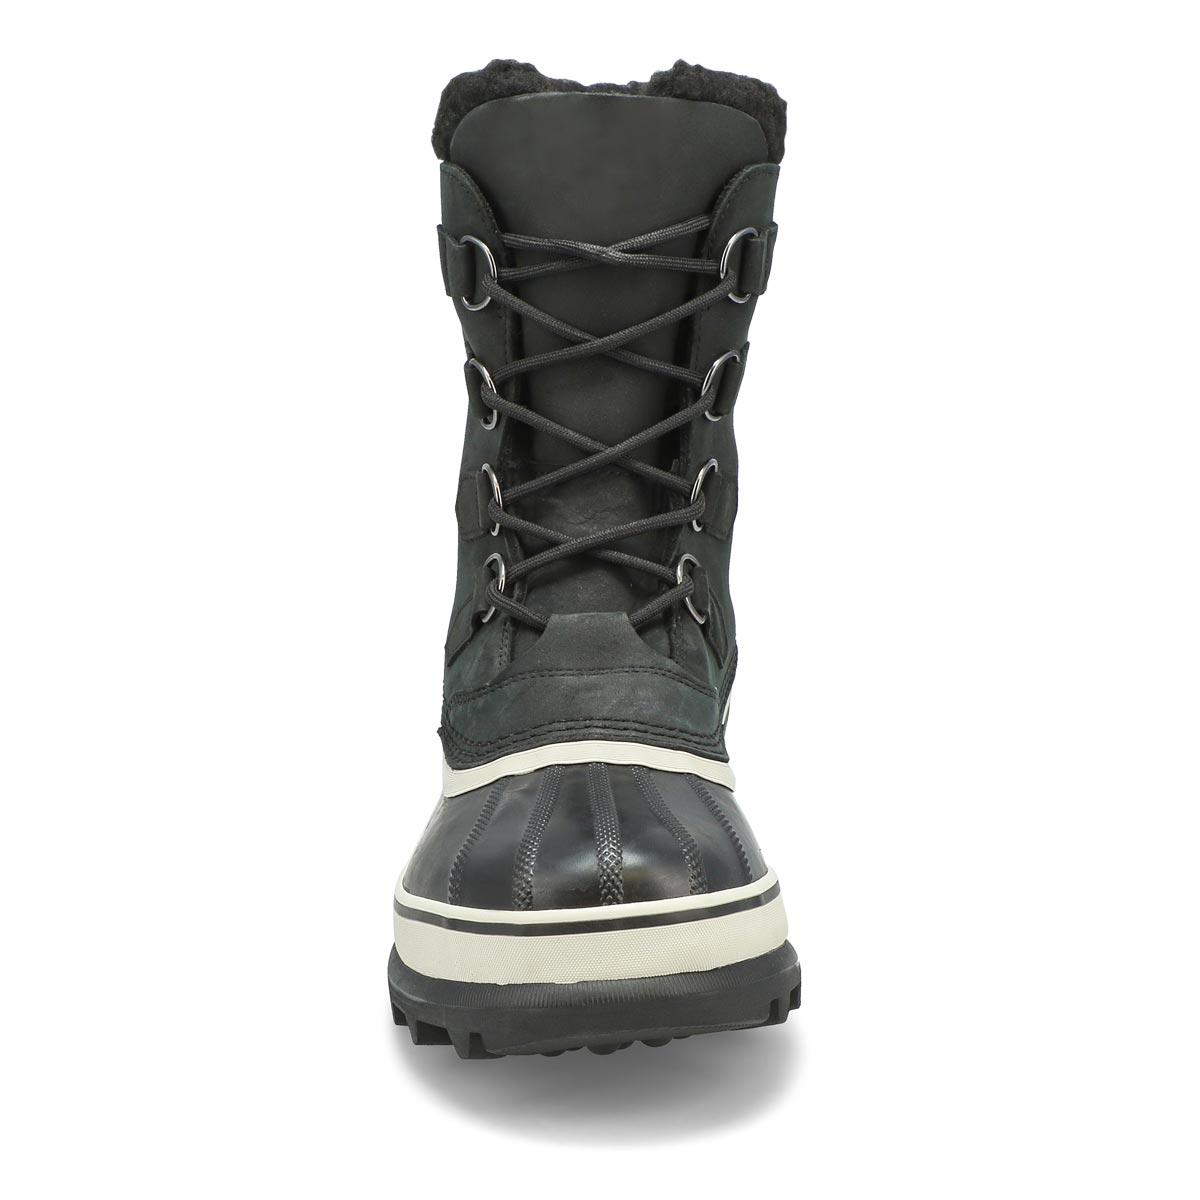 Mns Caribou blk/drk stone wtpf wntr boot